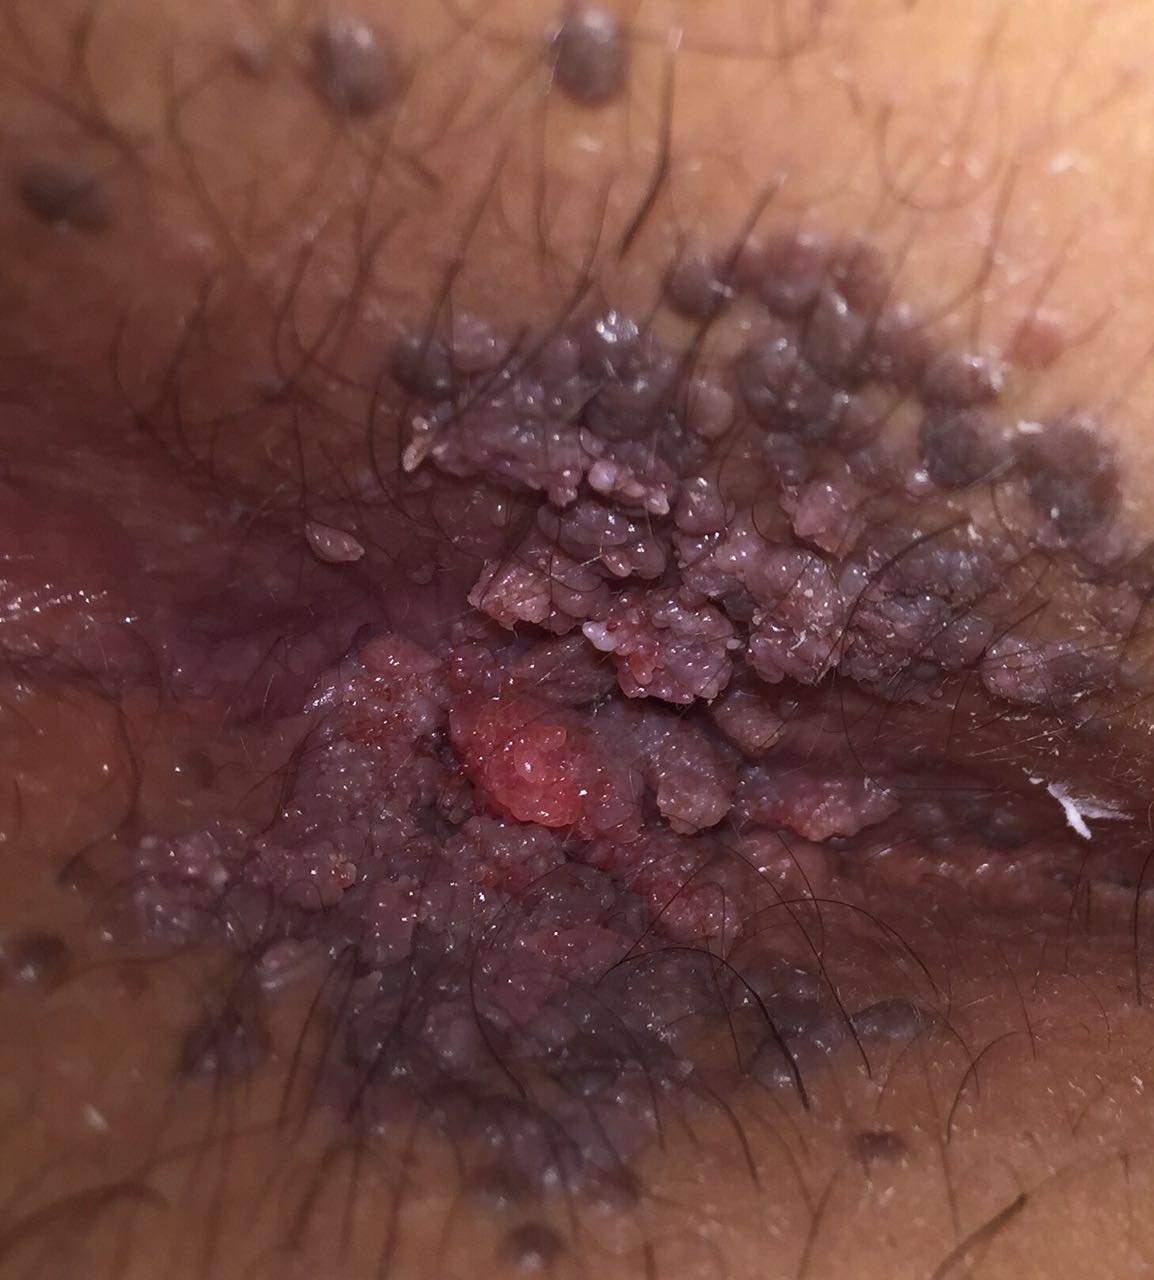 1 anal warts  befor treatment